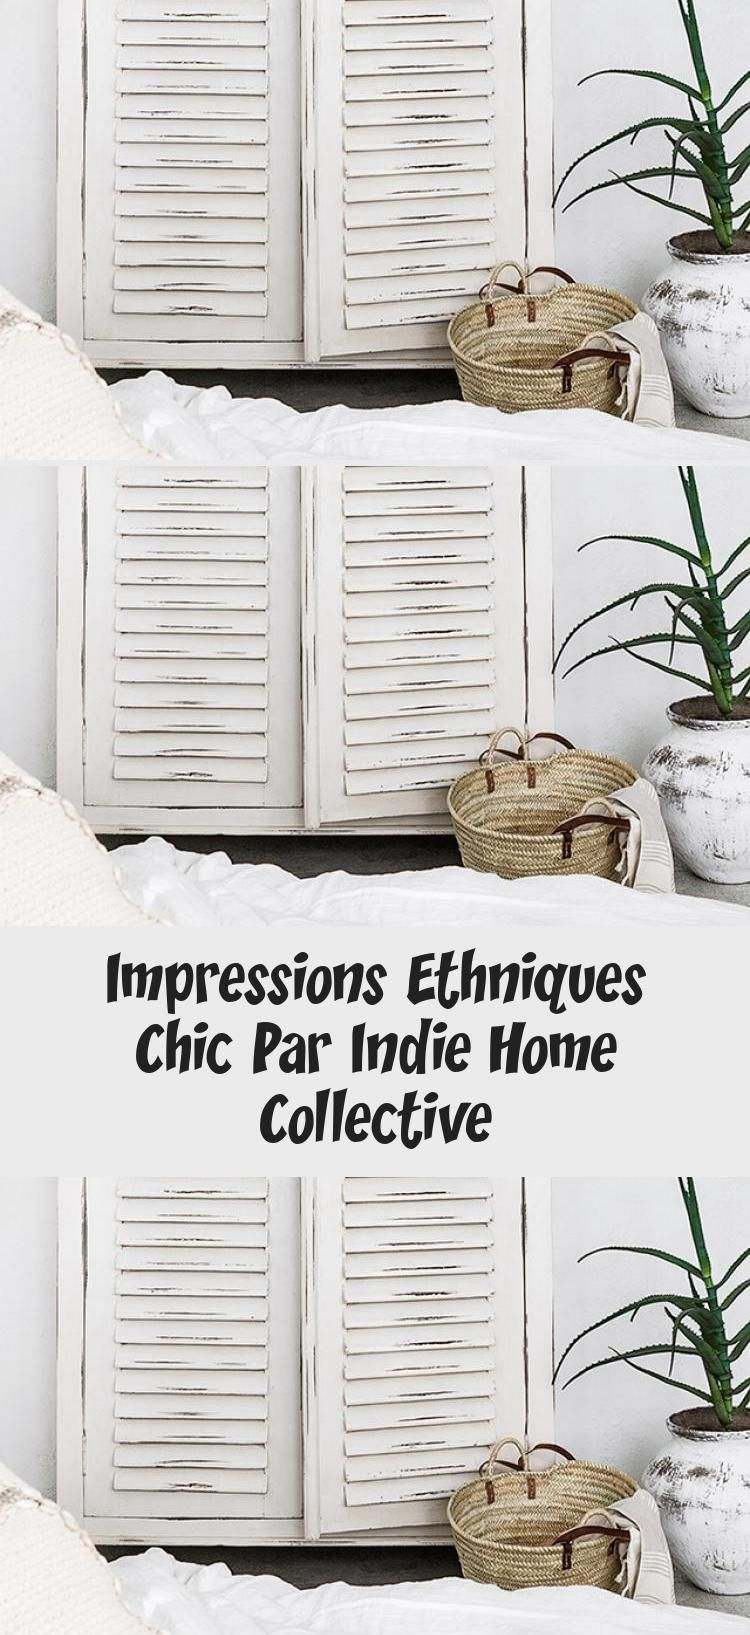 Photo of Chic Ethnic Impressions By Indie Home Collective – Decor